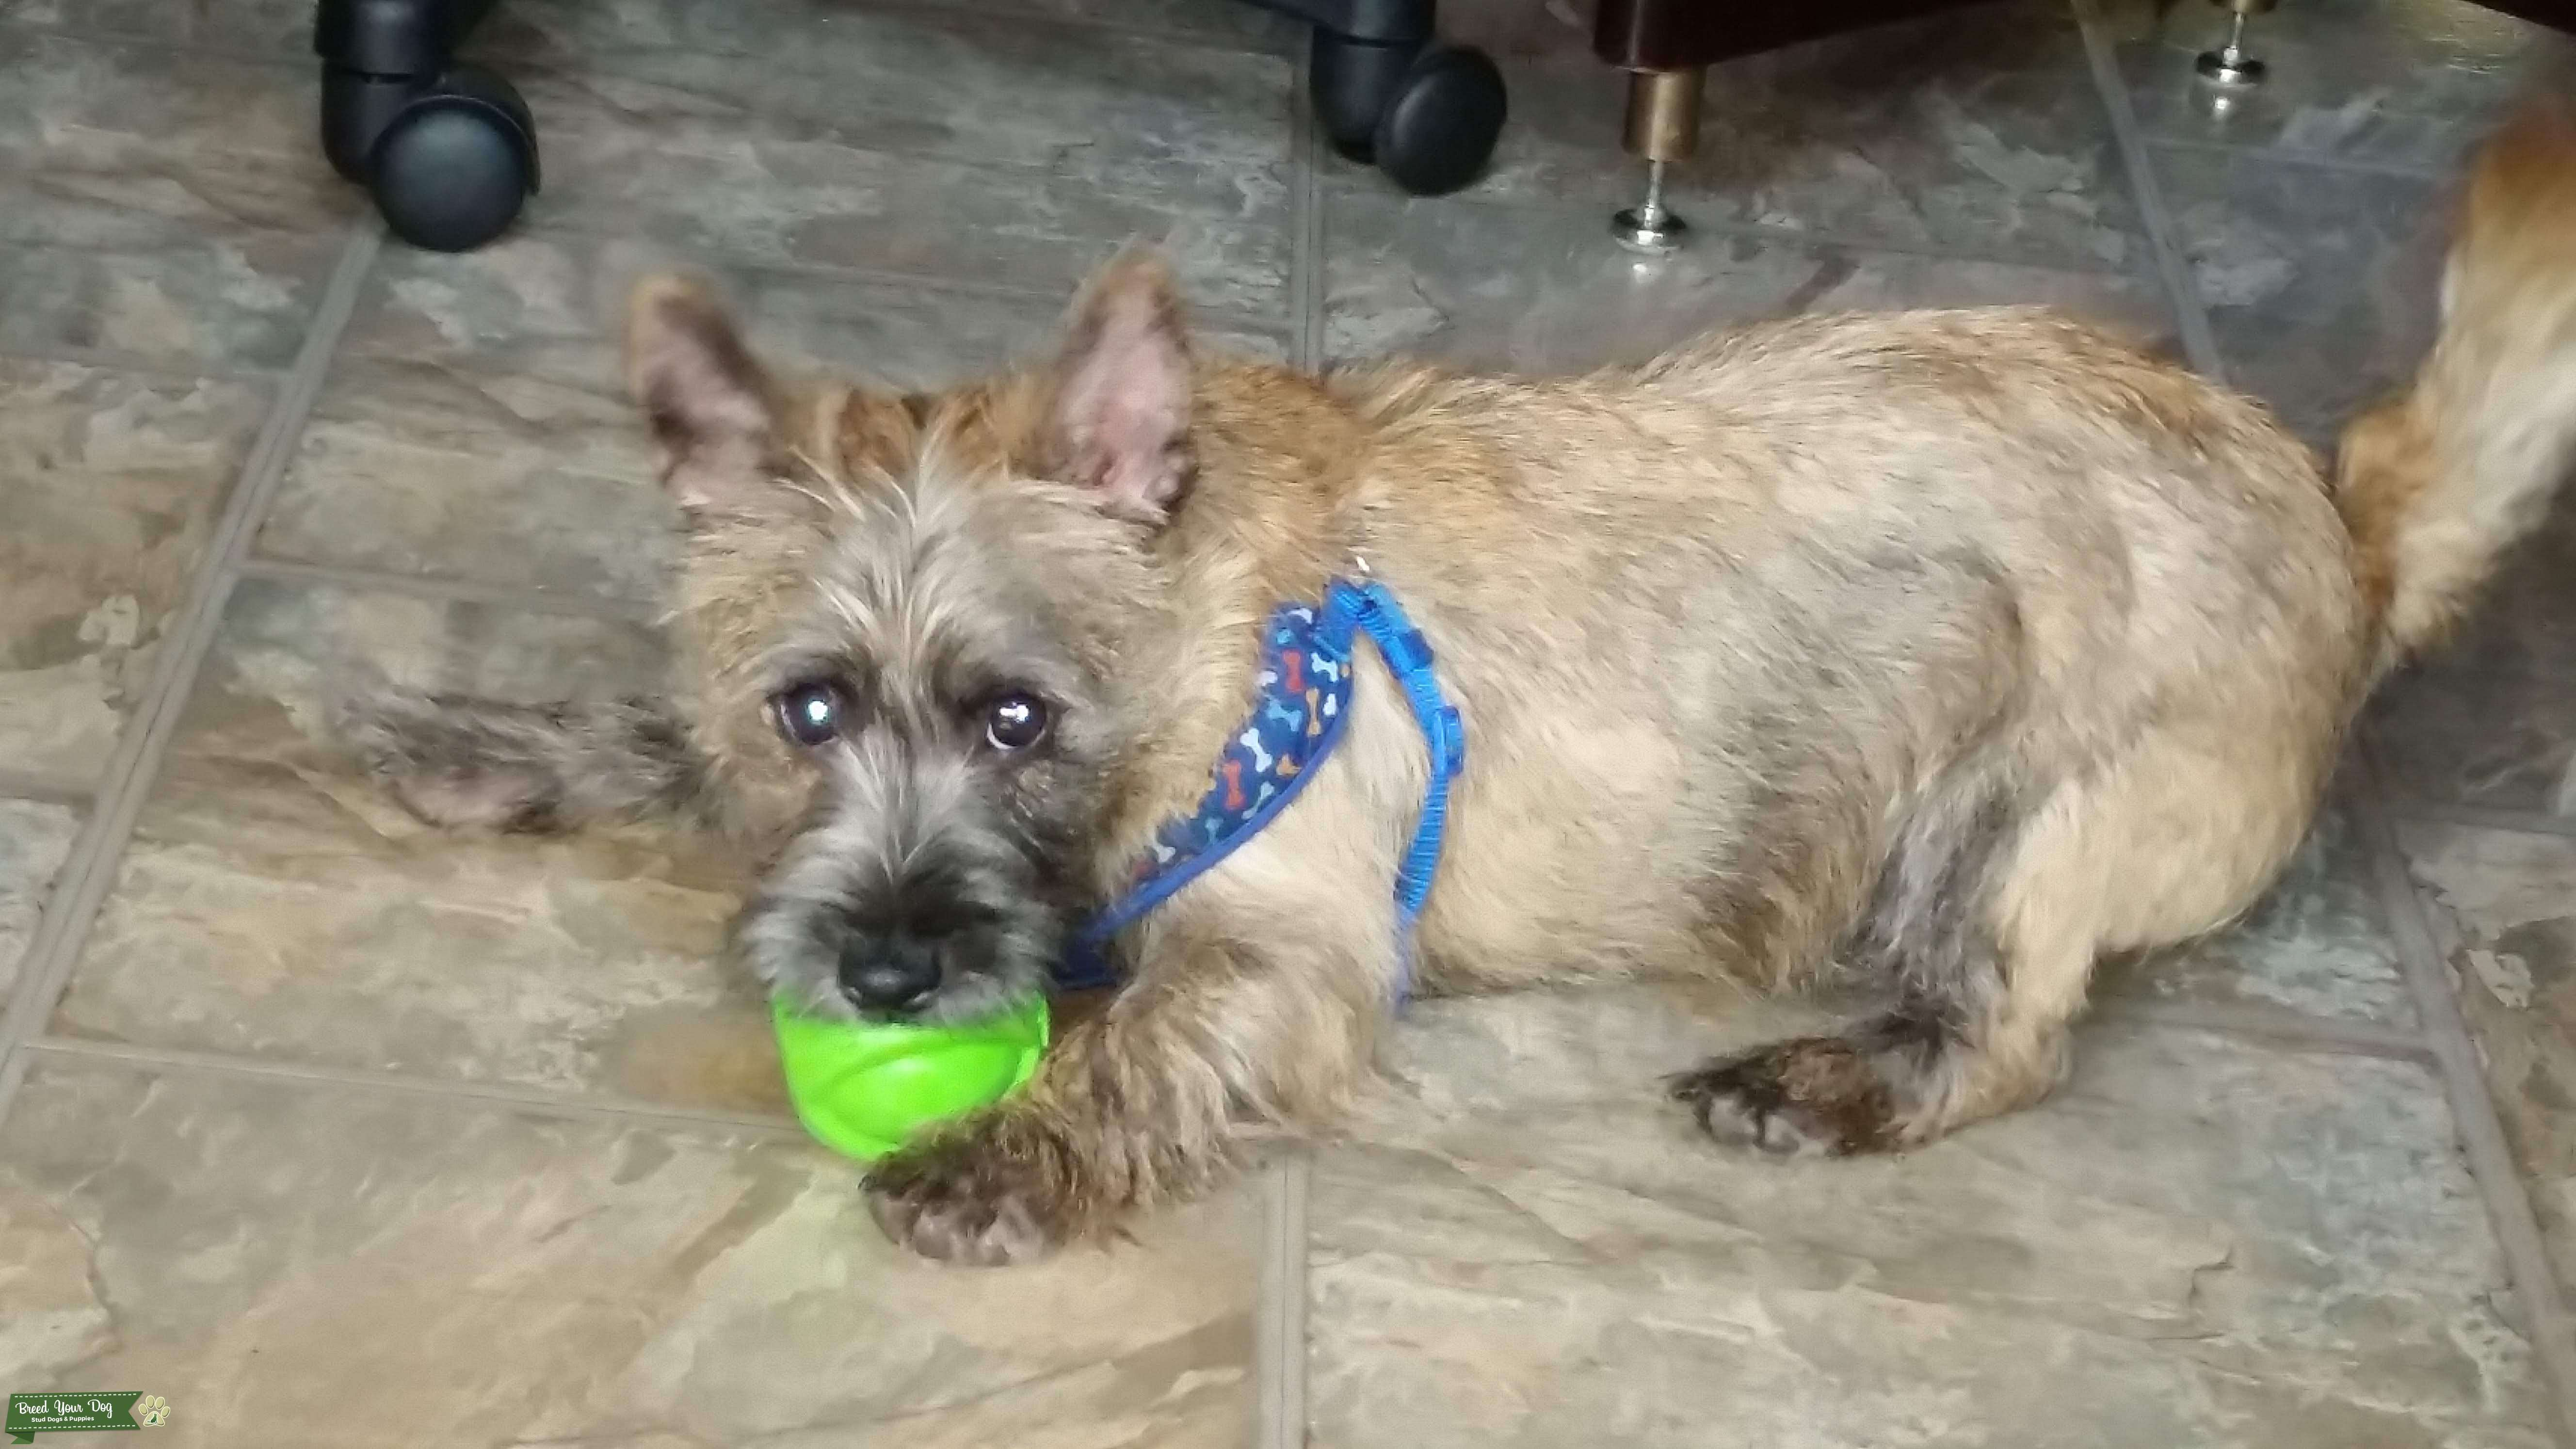 CARIN CARRIN cairn TERRIER TERIER Ozzy playful energetic Listing Image Big